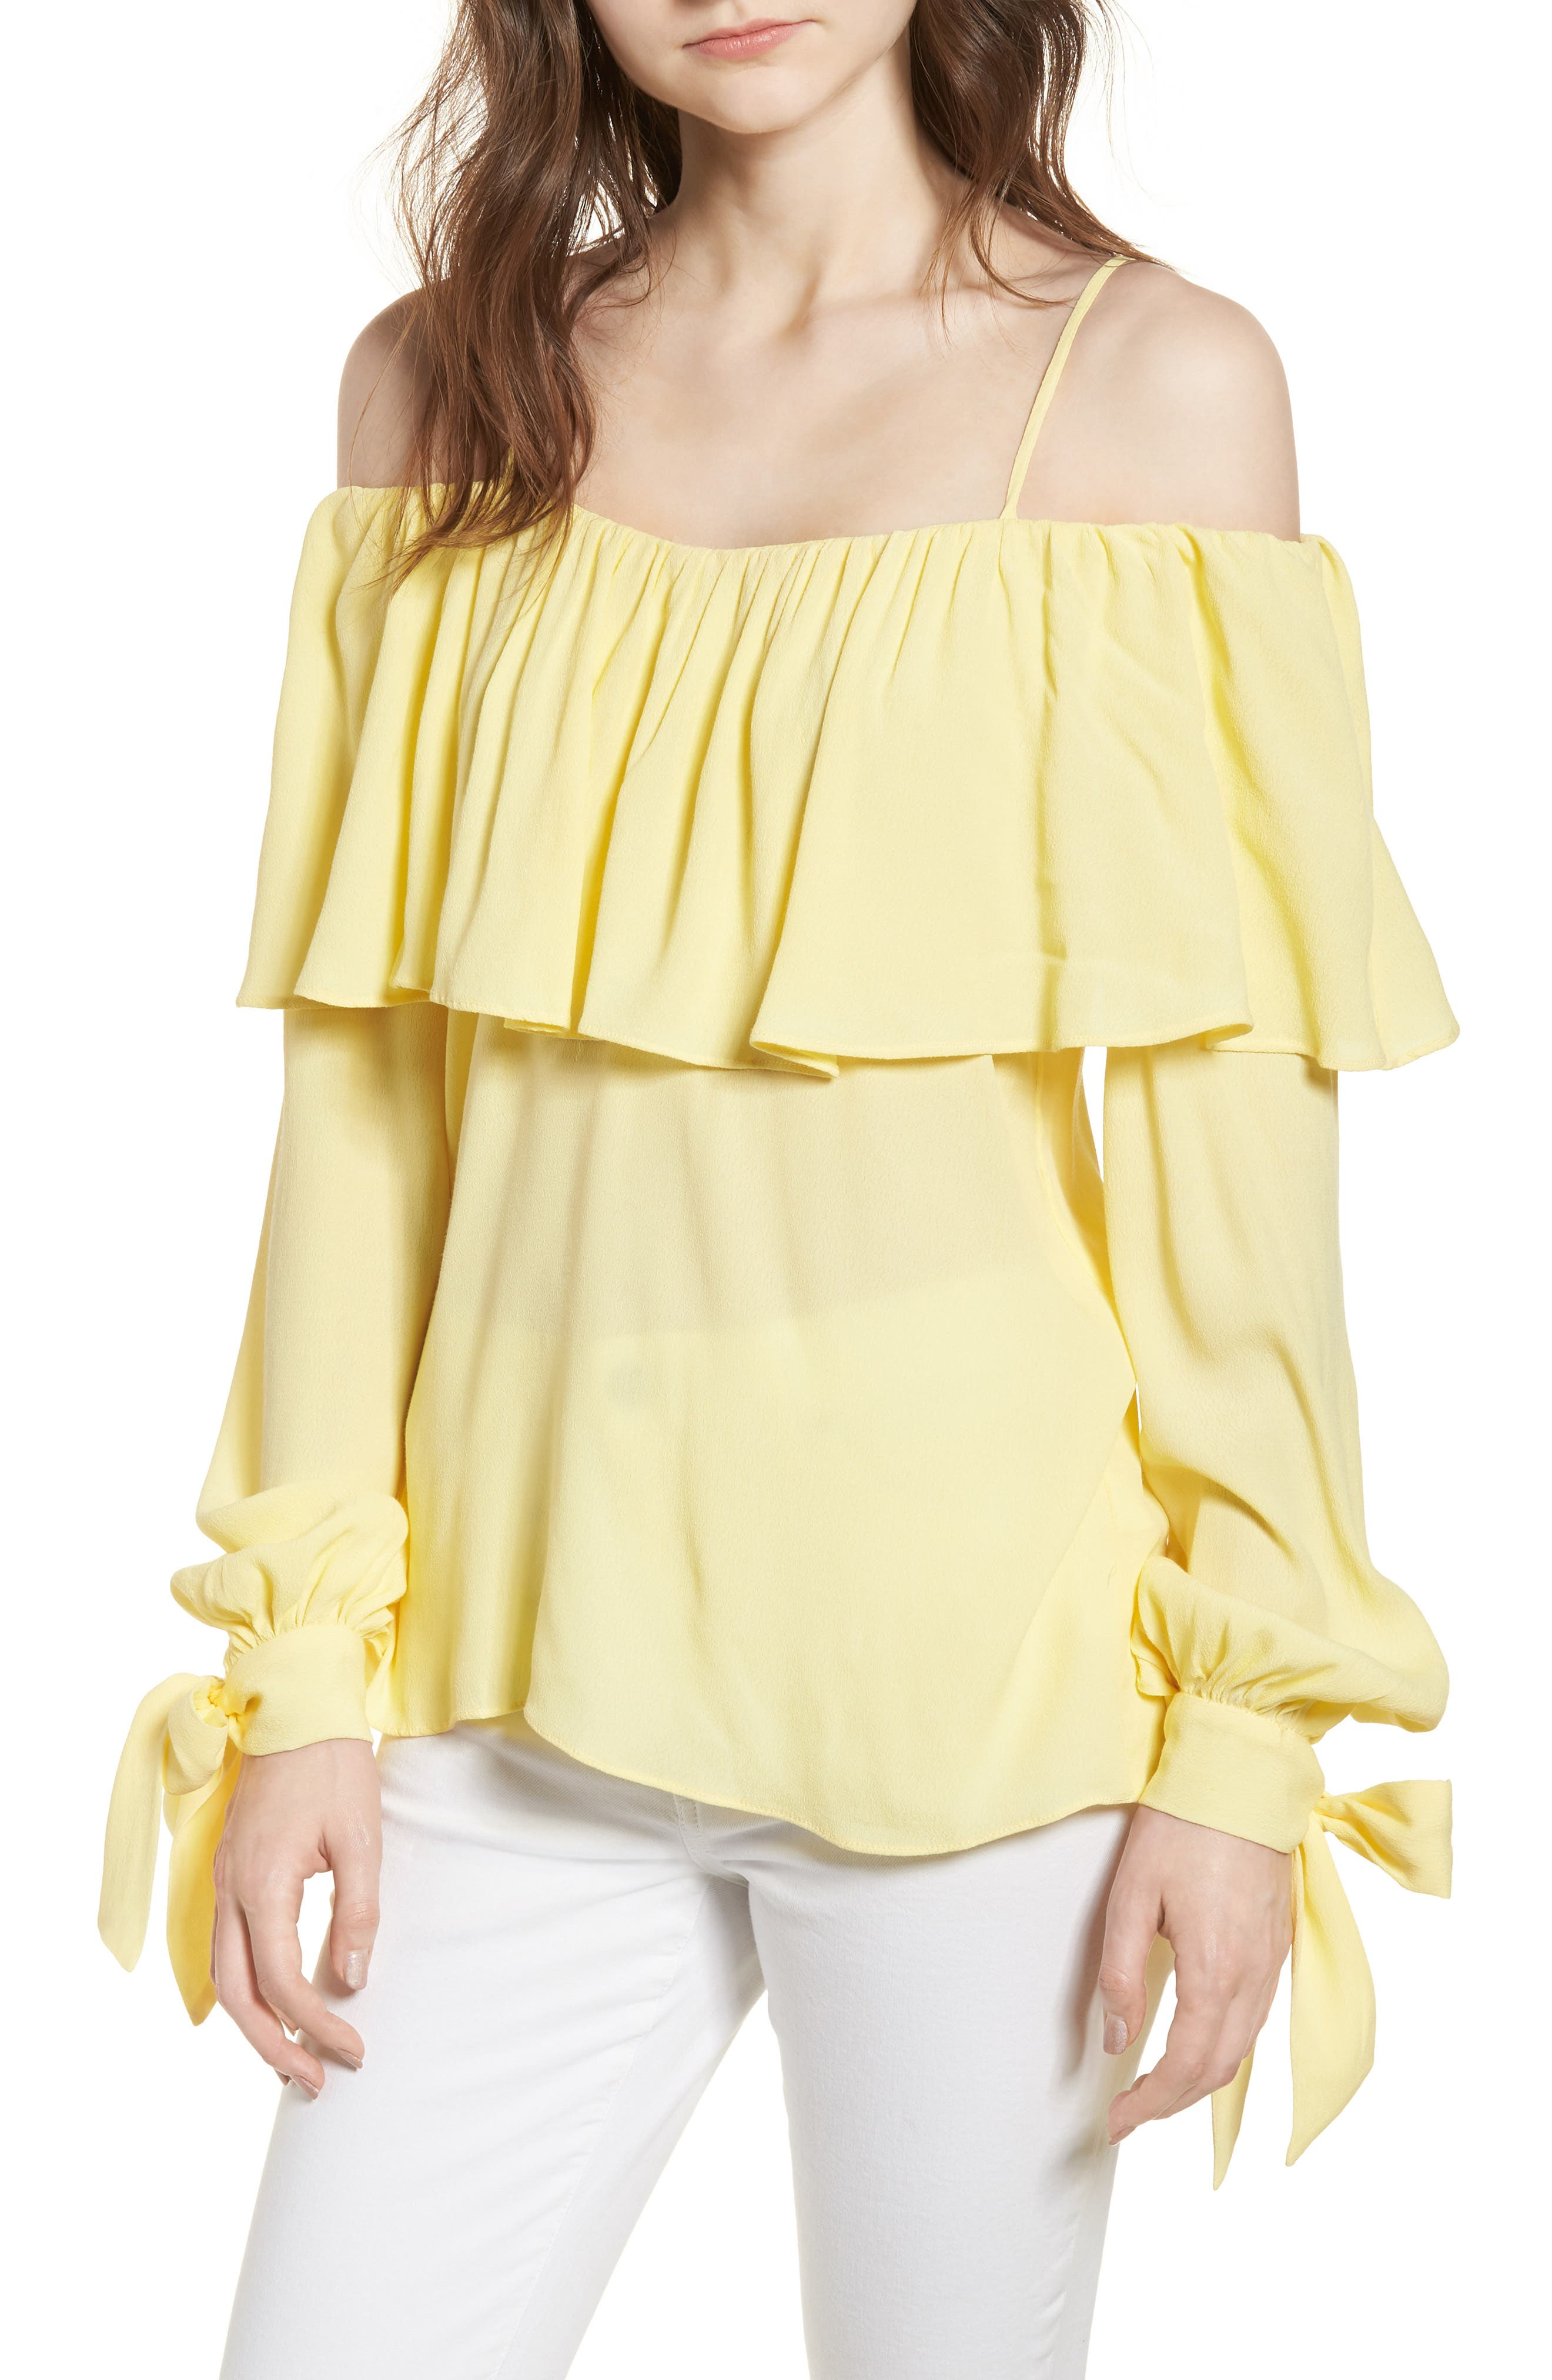 Chorus Off the Shoulder Tie Sleeve Top,                         Main,                         color, 700